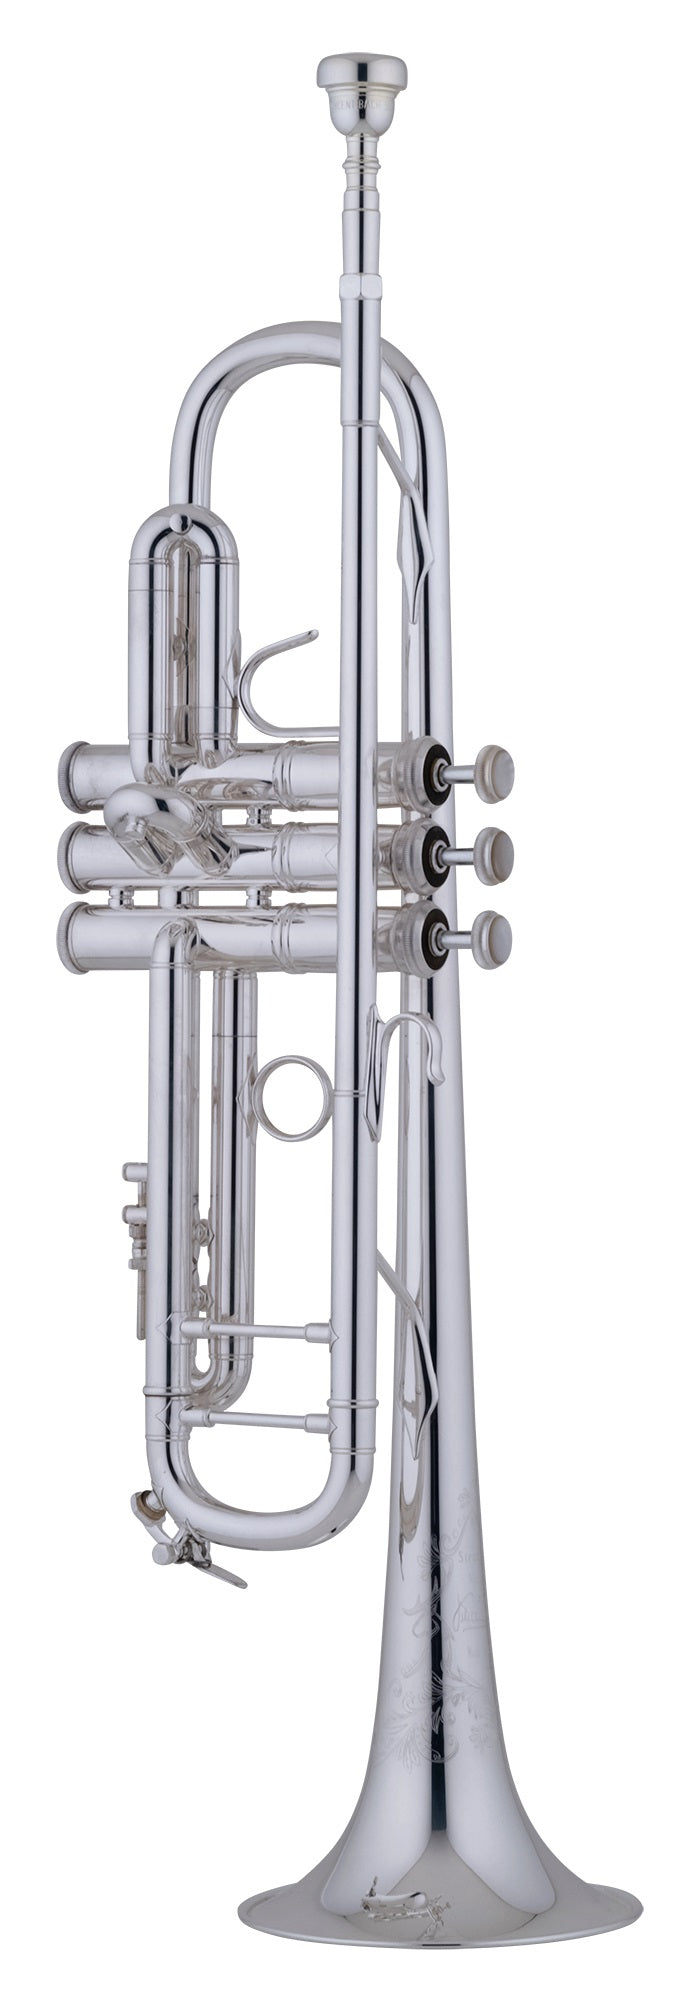 Bach 190S43 Stradivarius Professional B-Flat Trumpet Outfit - Silver-Plated